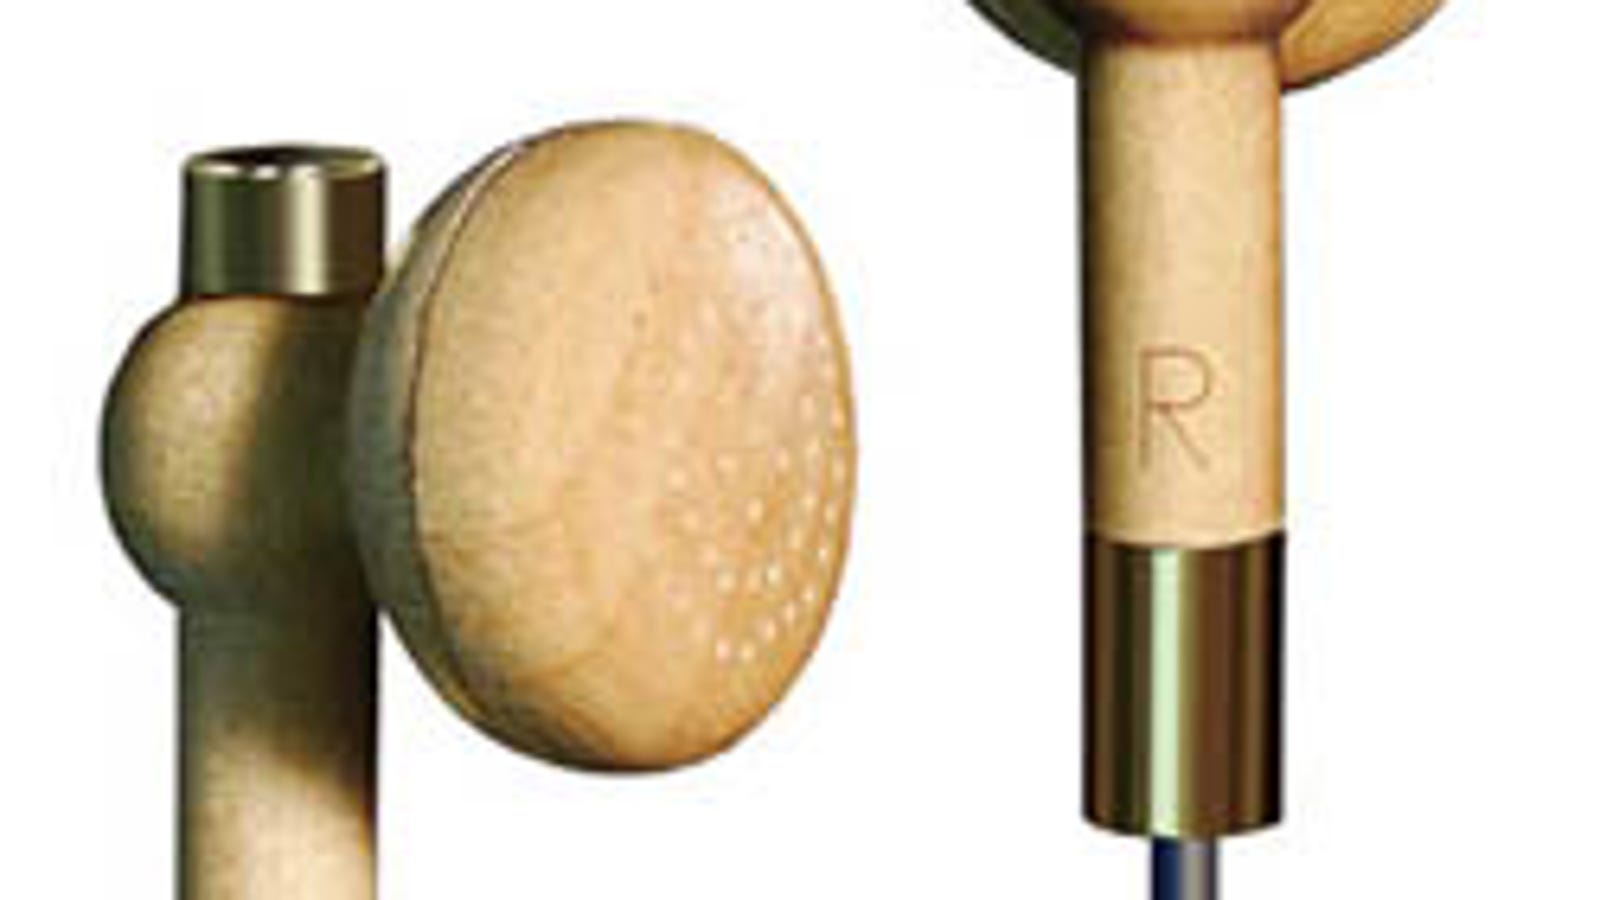 bose soundtrue ultra earbuds - Wooden Earbuds Would Make for a Nasty Splinter